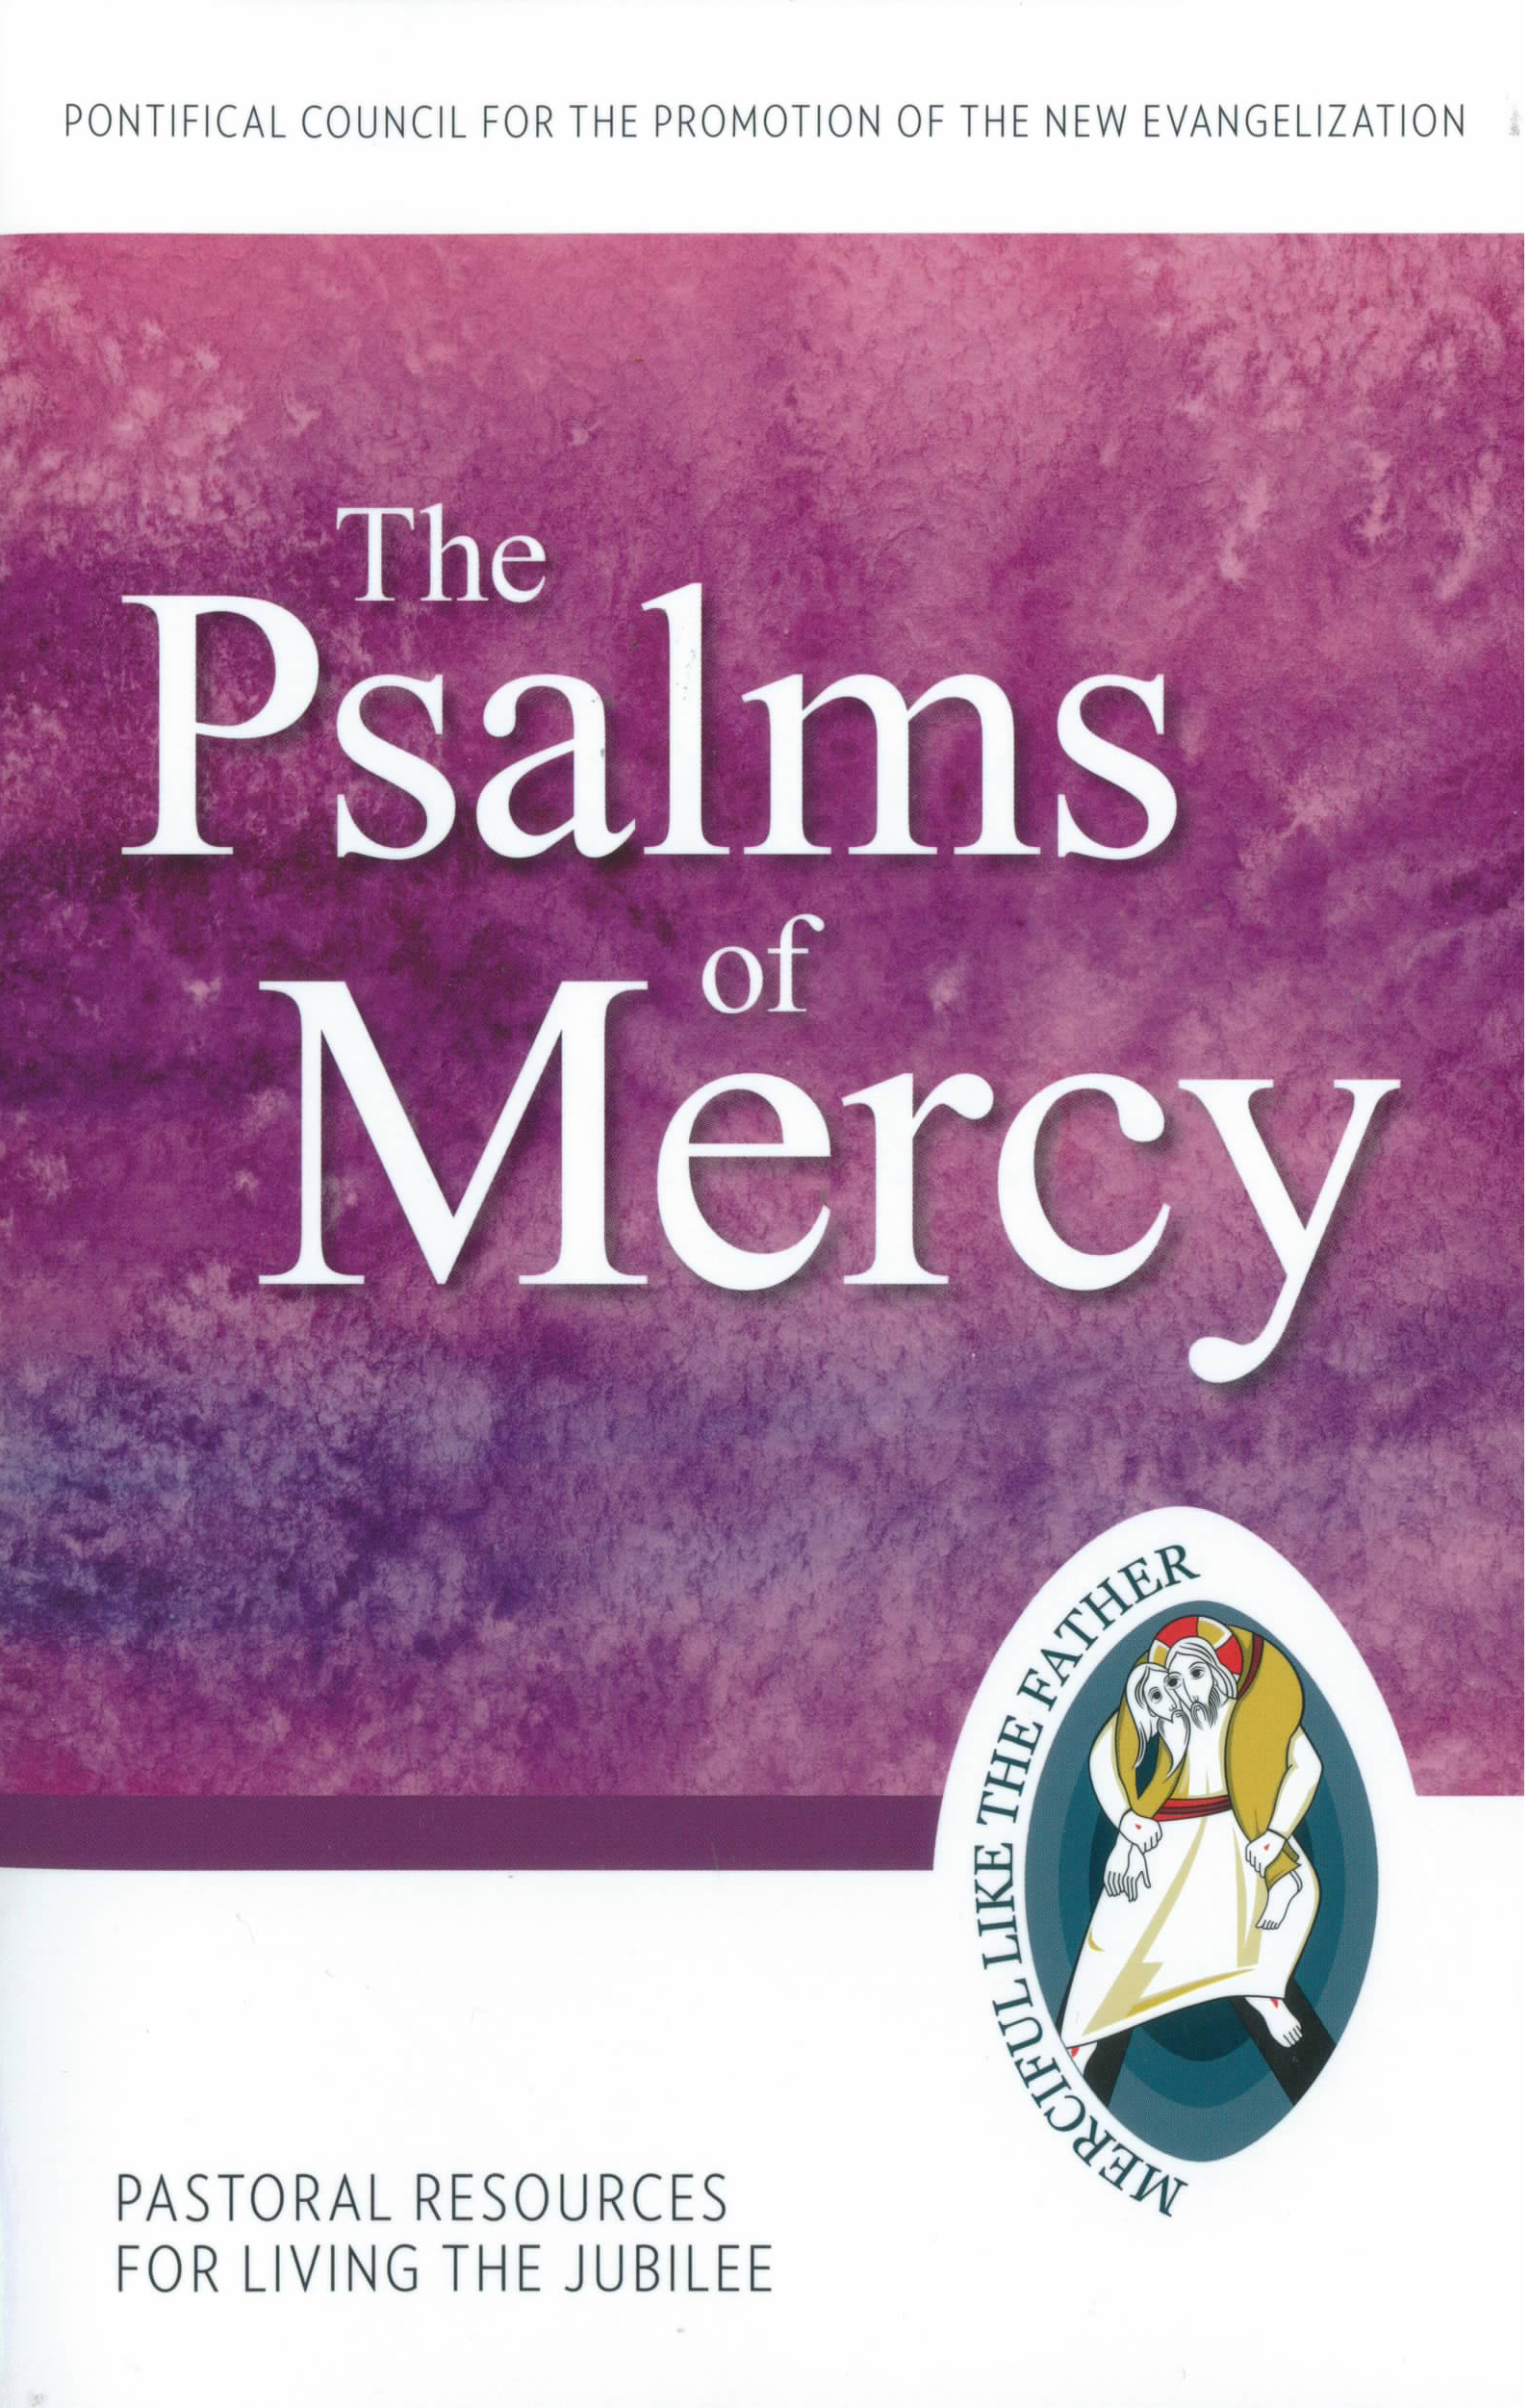 The Psalms of Mercy 9781612789767 Pastoral Resources for Living the Jubilee Pontifical Council for the Promotion of the New Evangelization Year of Mercy books